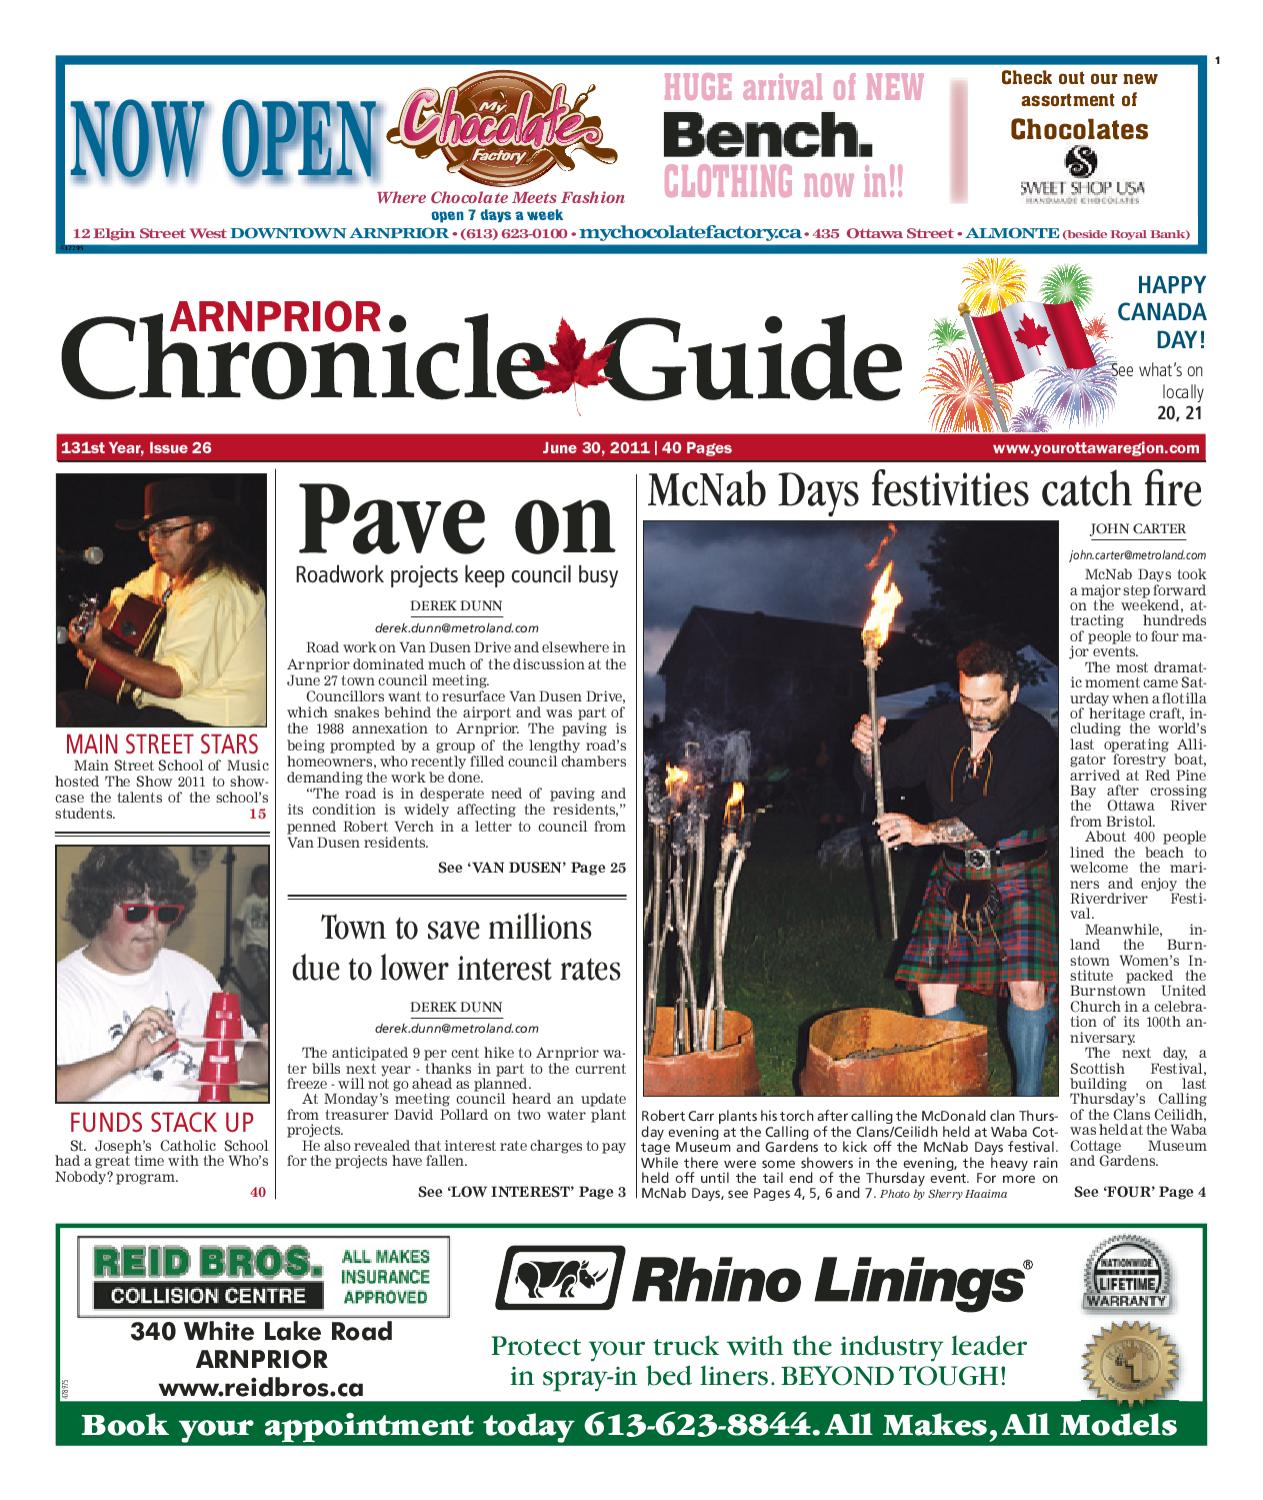 Arnprior Chronicle Guide By Metroland East Curren 8117 Stainless Steel Strap Menamp039s Business Watch Issuu